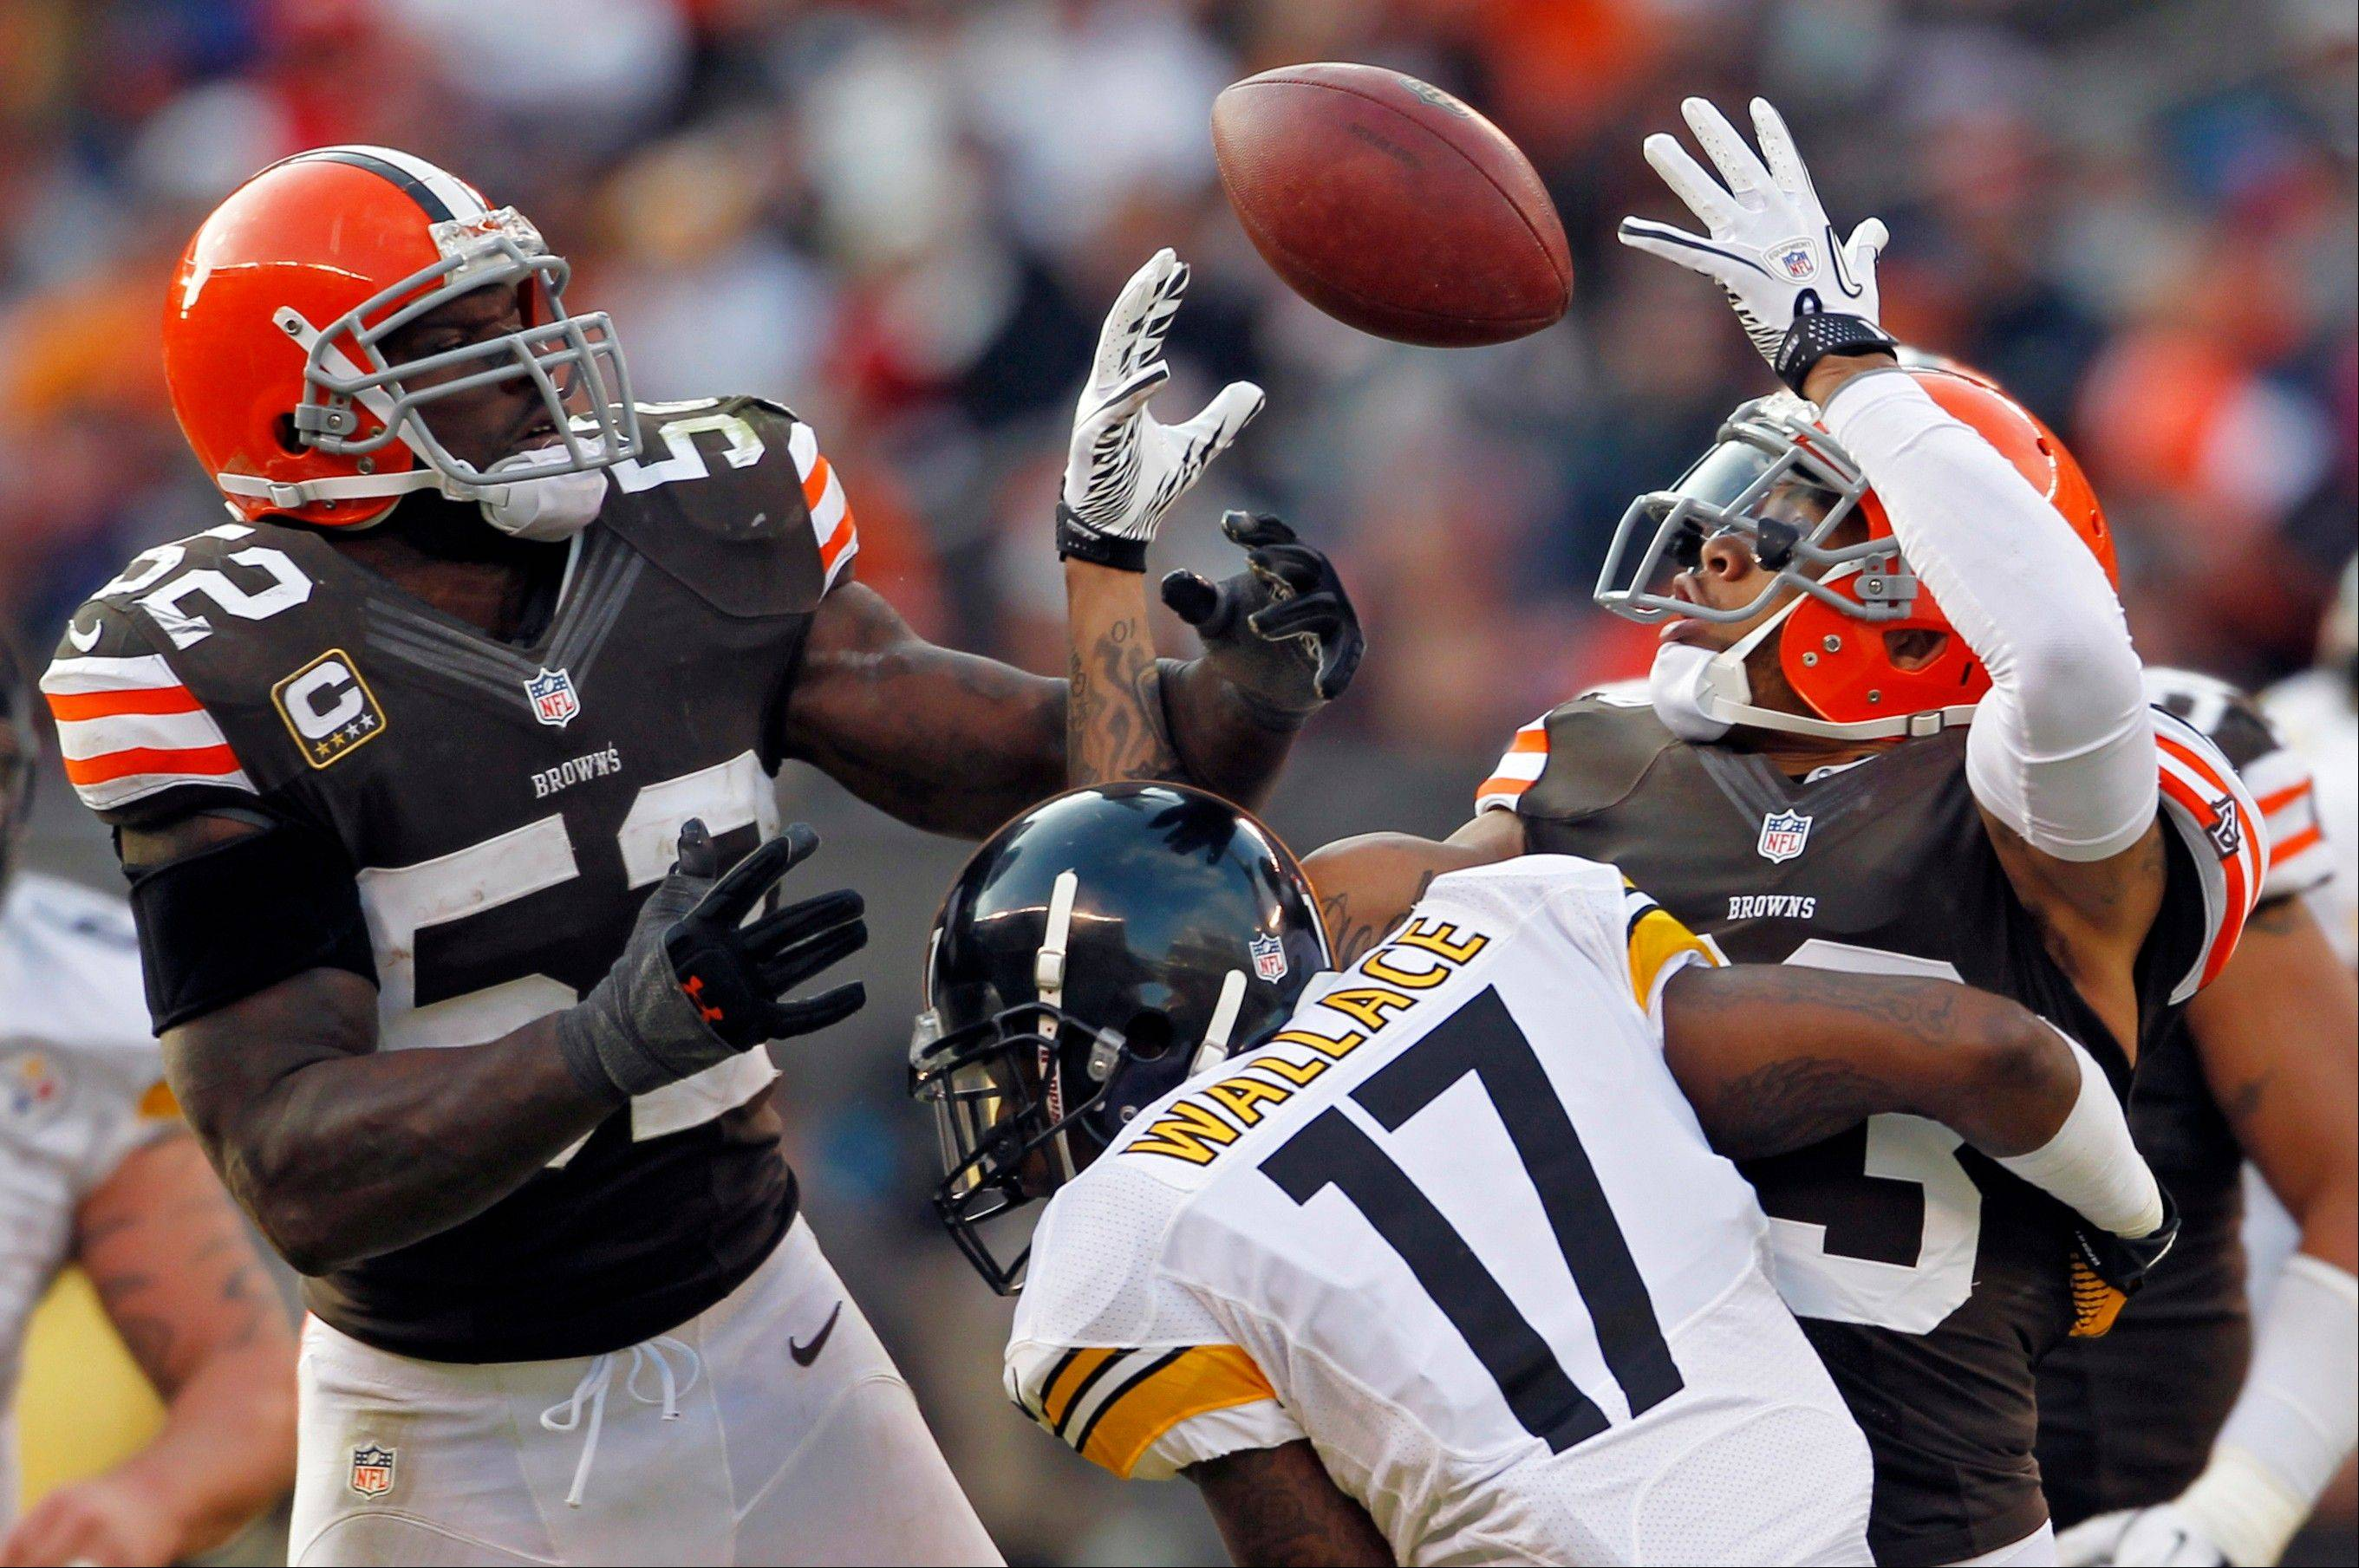 Cleveland Browns linebacker D�Qwell Jackson (52) and cornerback Joe Haden break up a pass to Pittsburgh Steelers wide receiver Mike Wallace in the fourth quarter Sunday in Cleveland. The tipped ball was recovered by Browns defensive tackle Billy Winn.